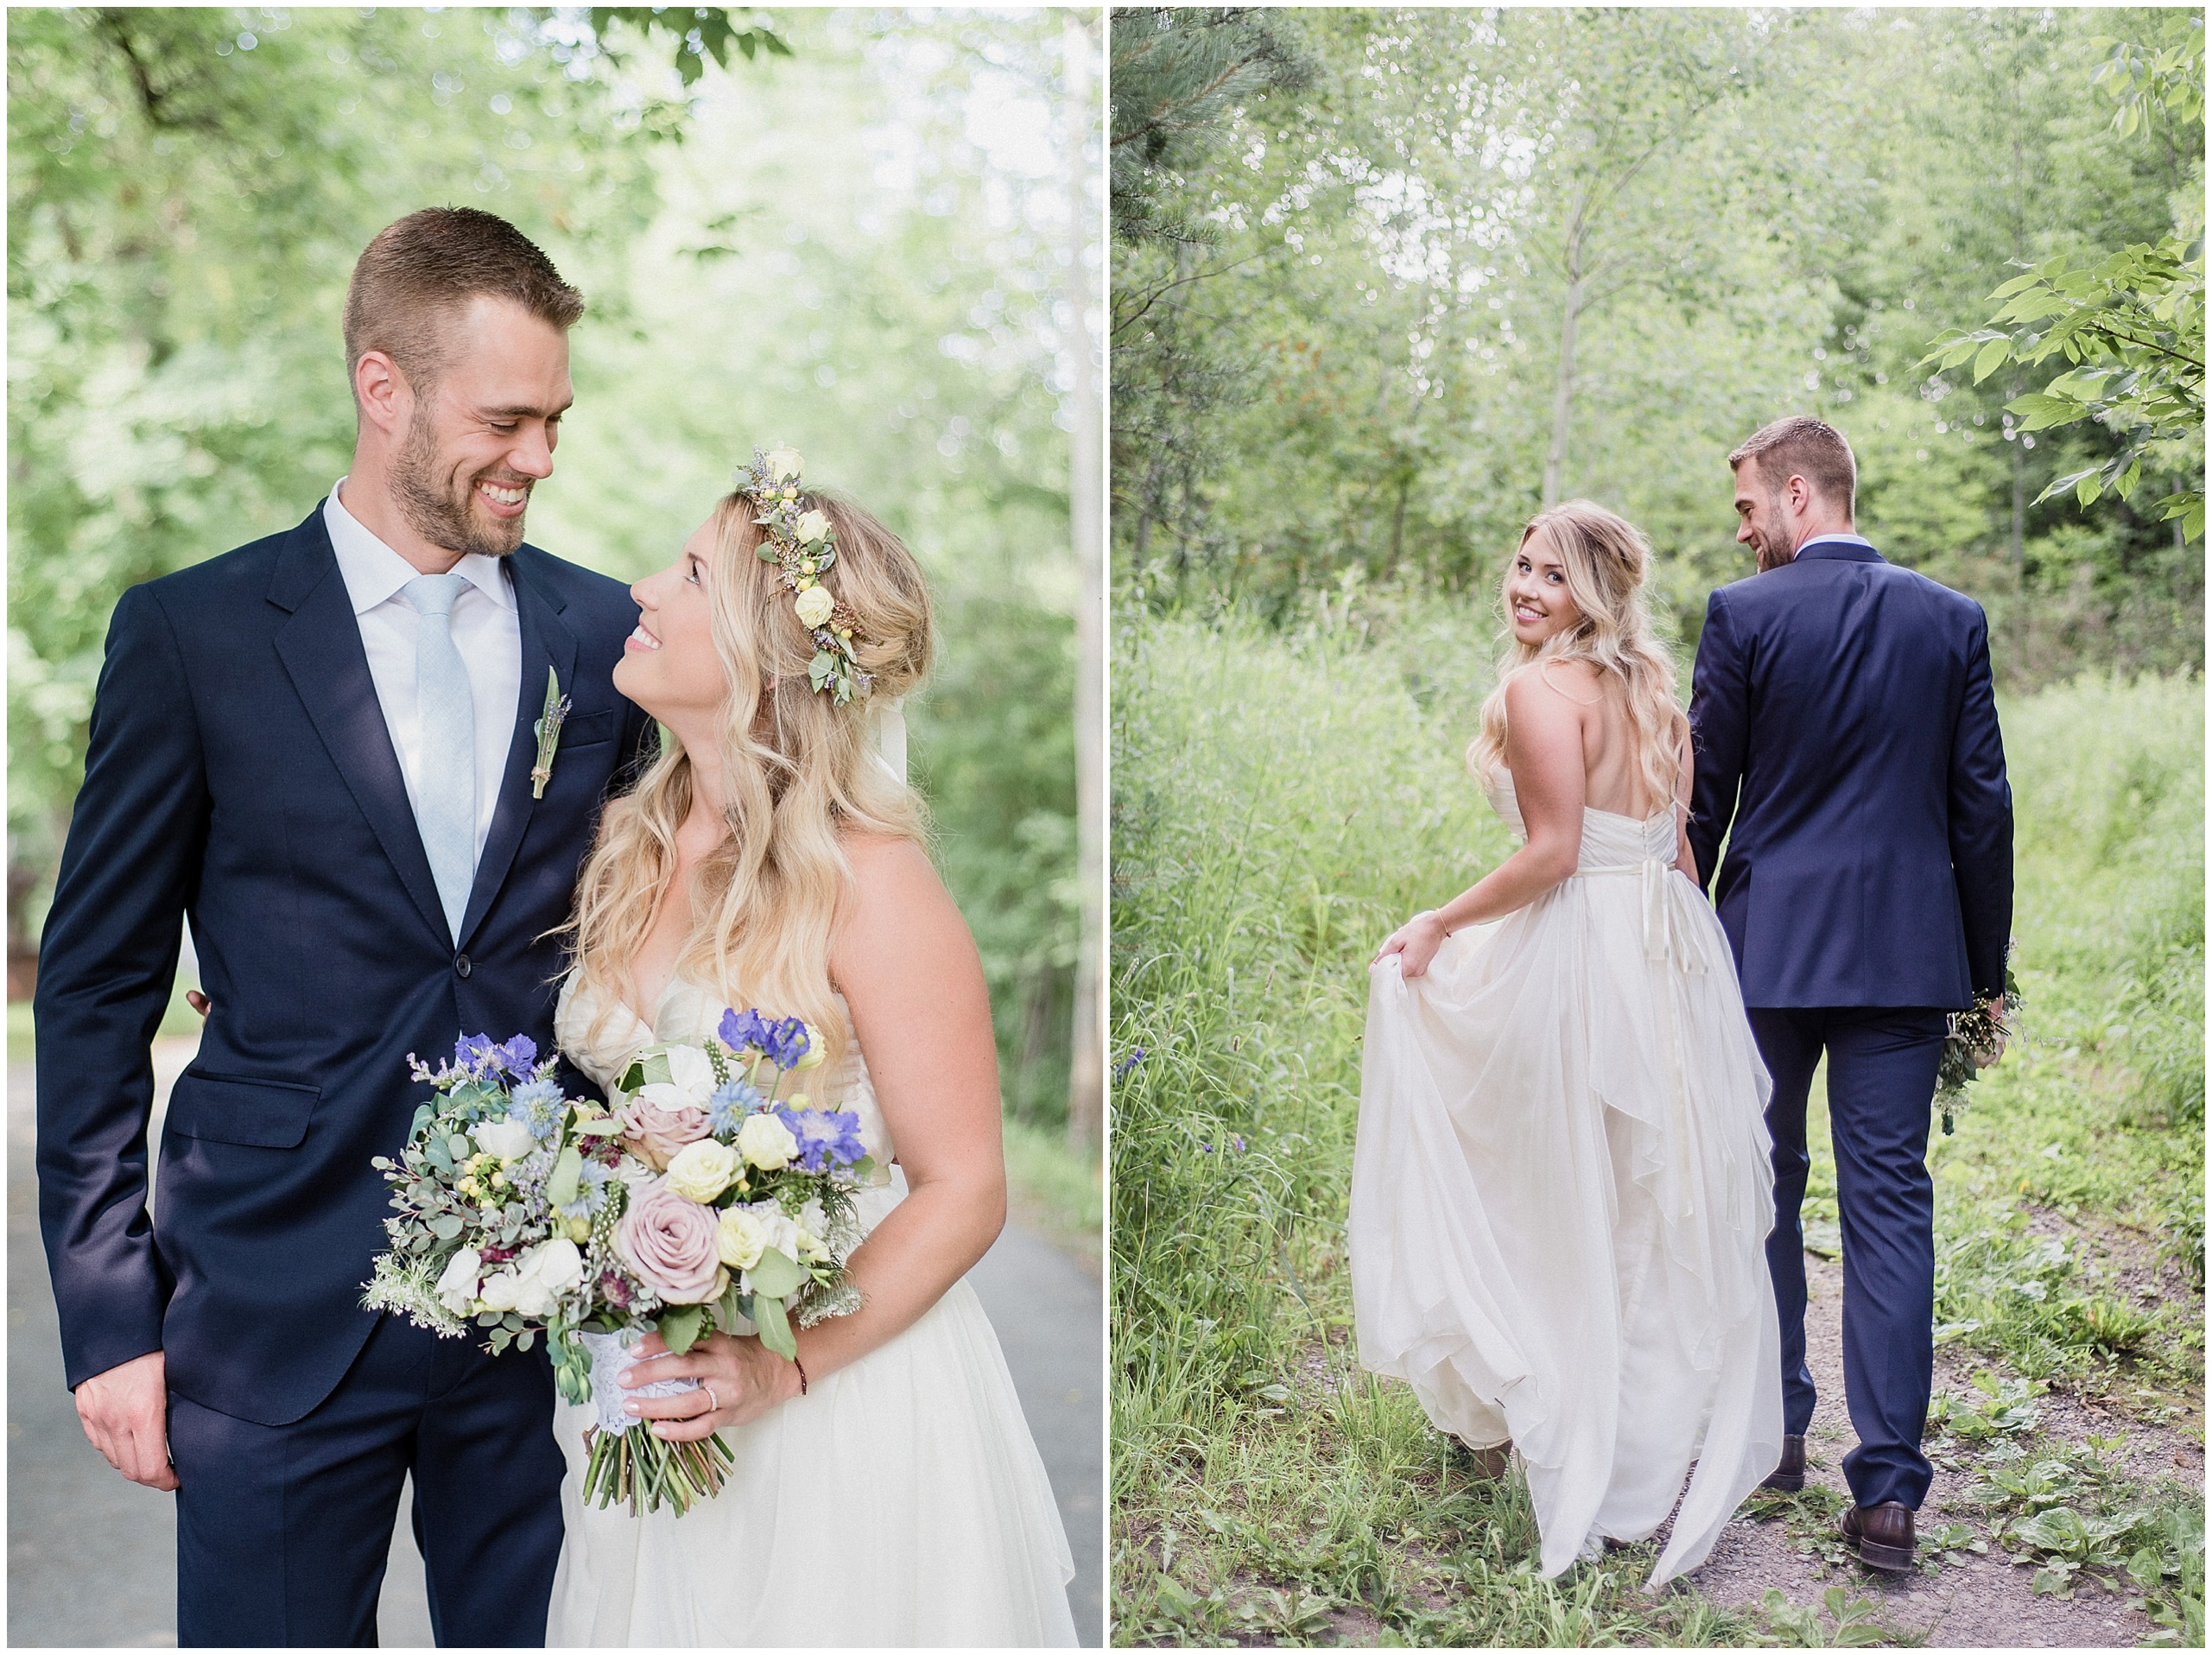 Alton Mill Wedding photographed by Jenn Kavanagh Photography